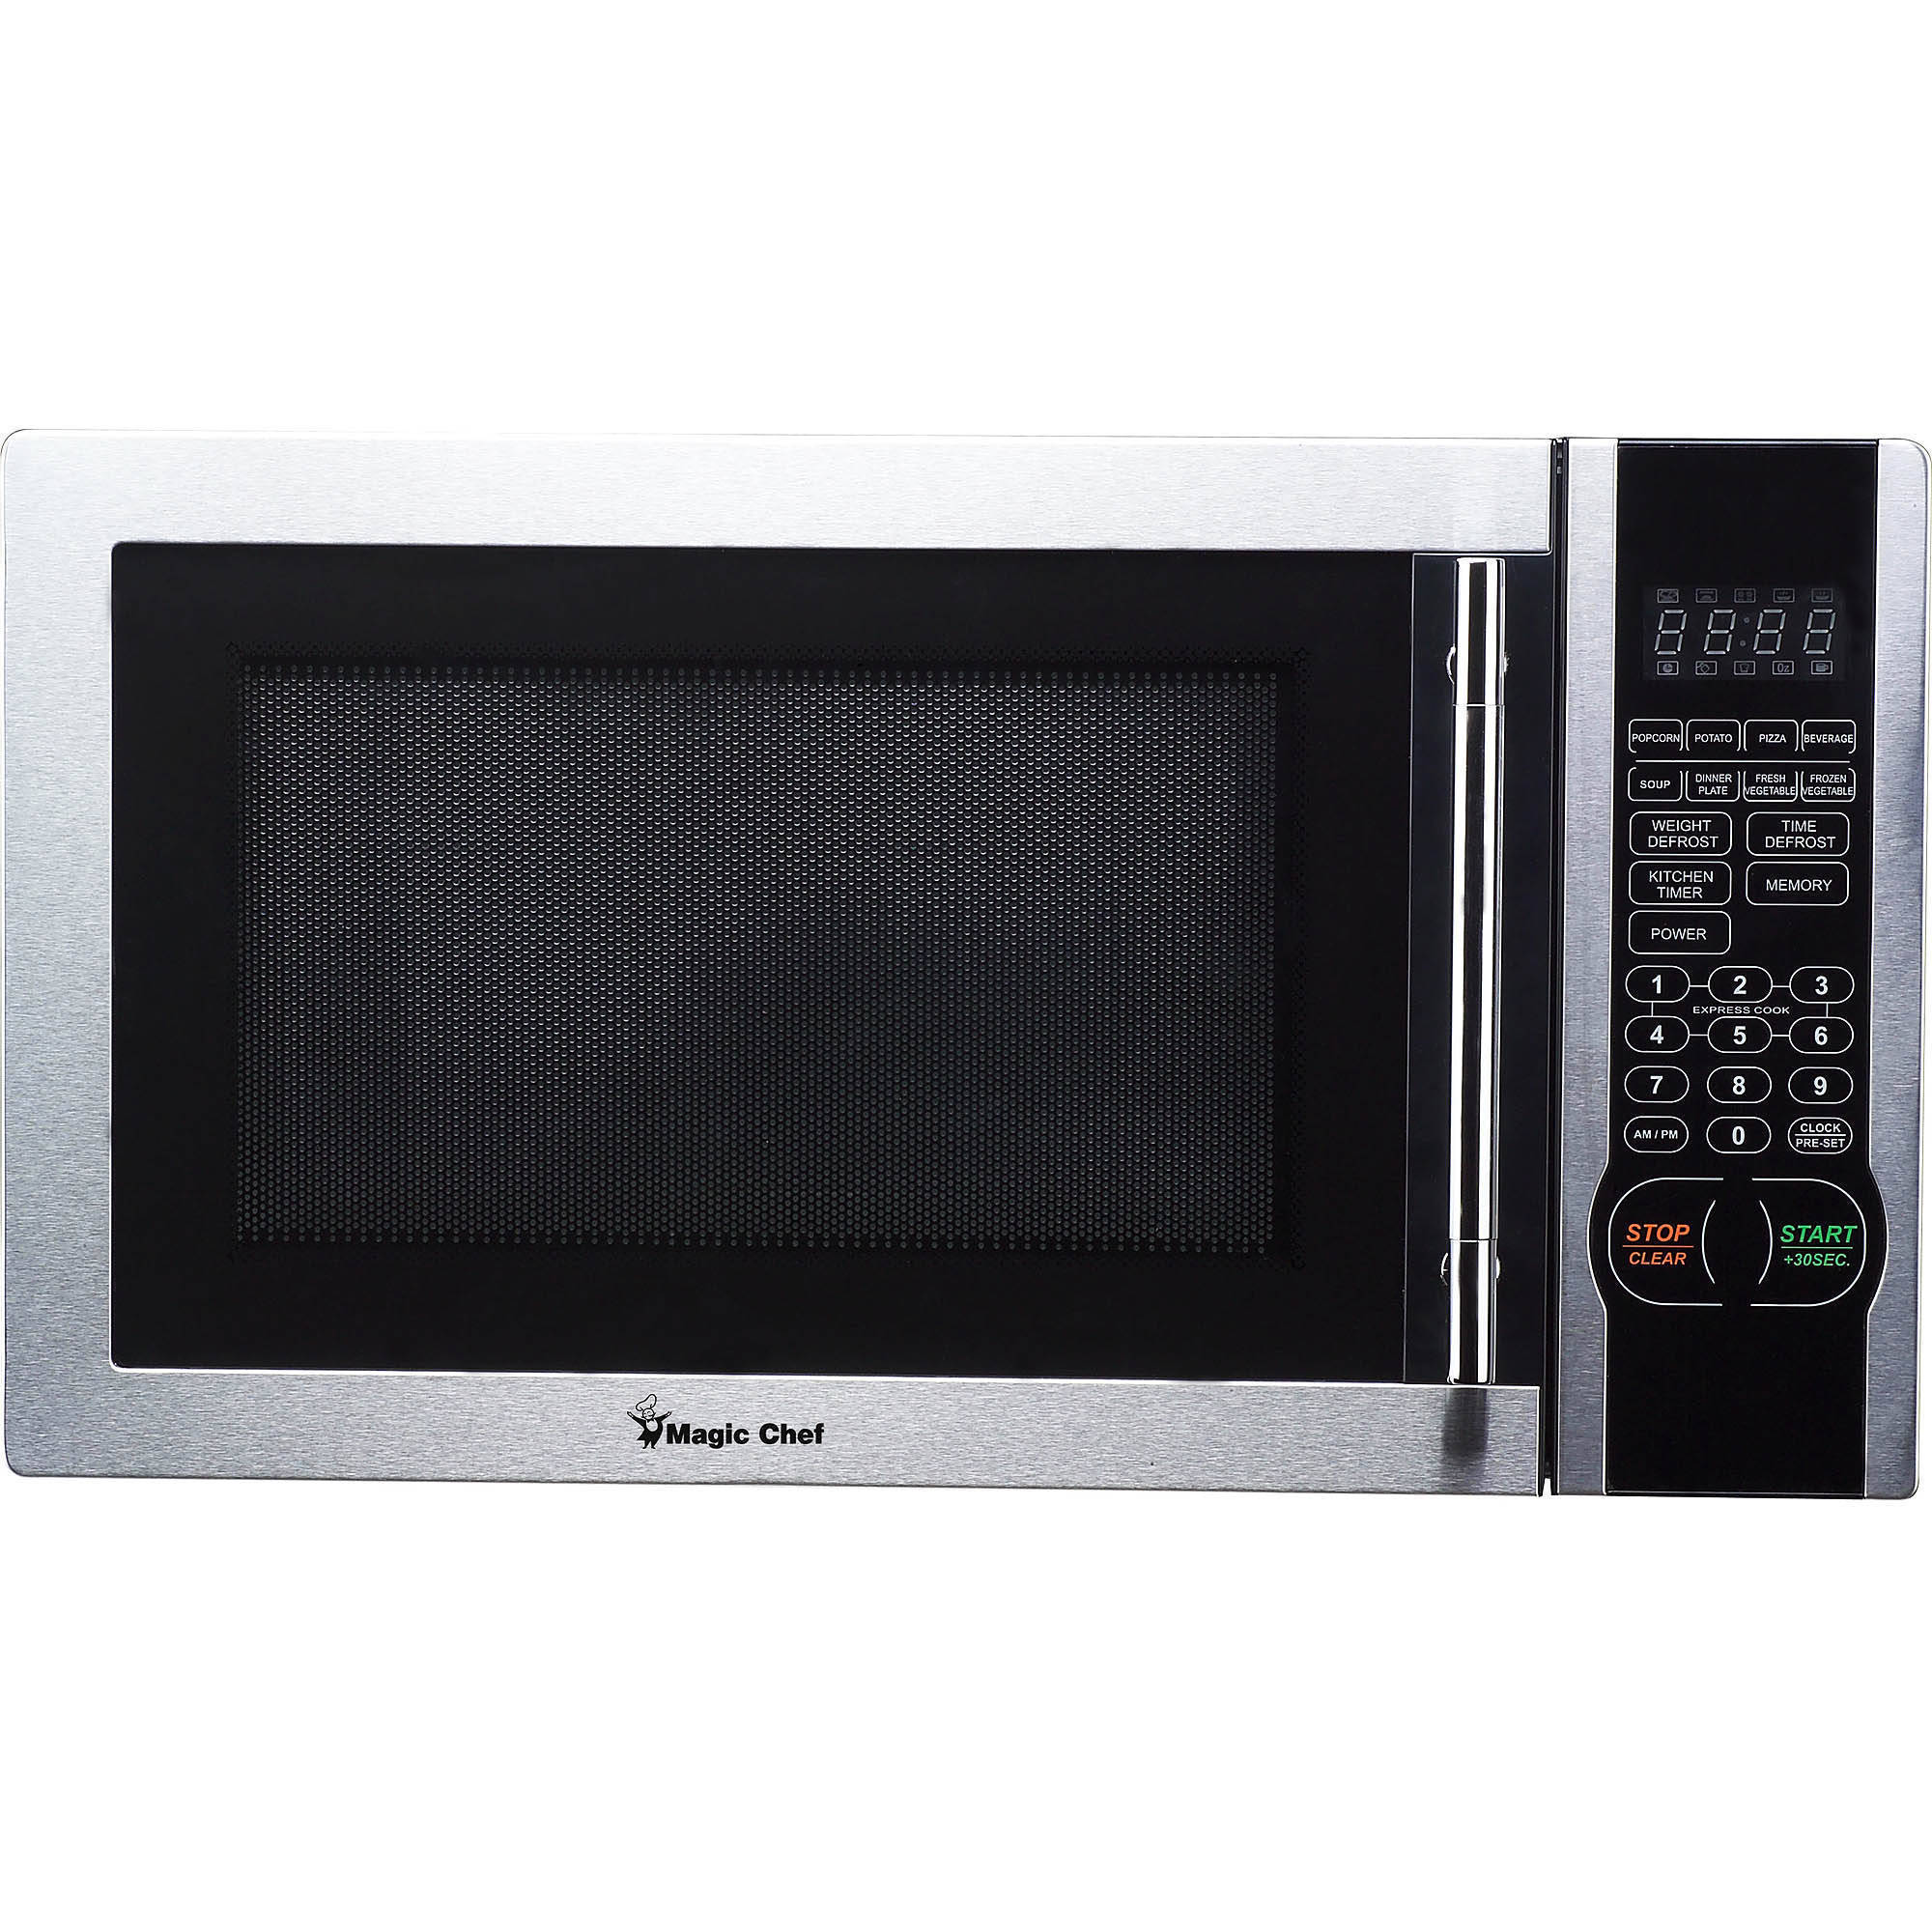 Magic Chef Stainless Steel (Silver) Microwave Oven (Glass)